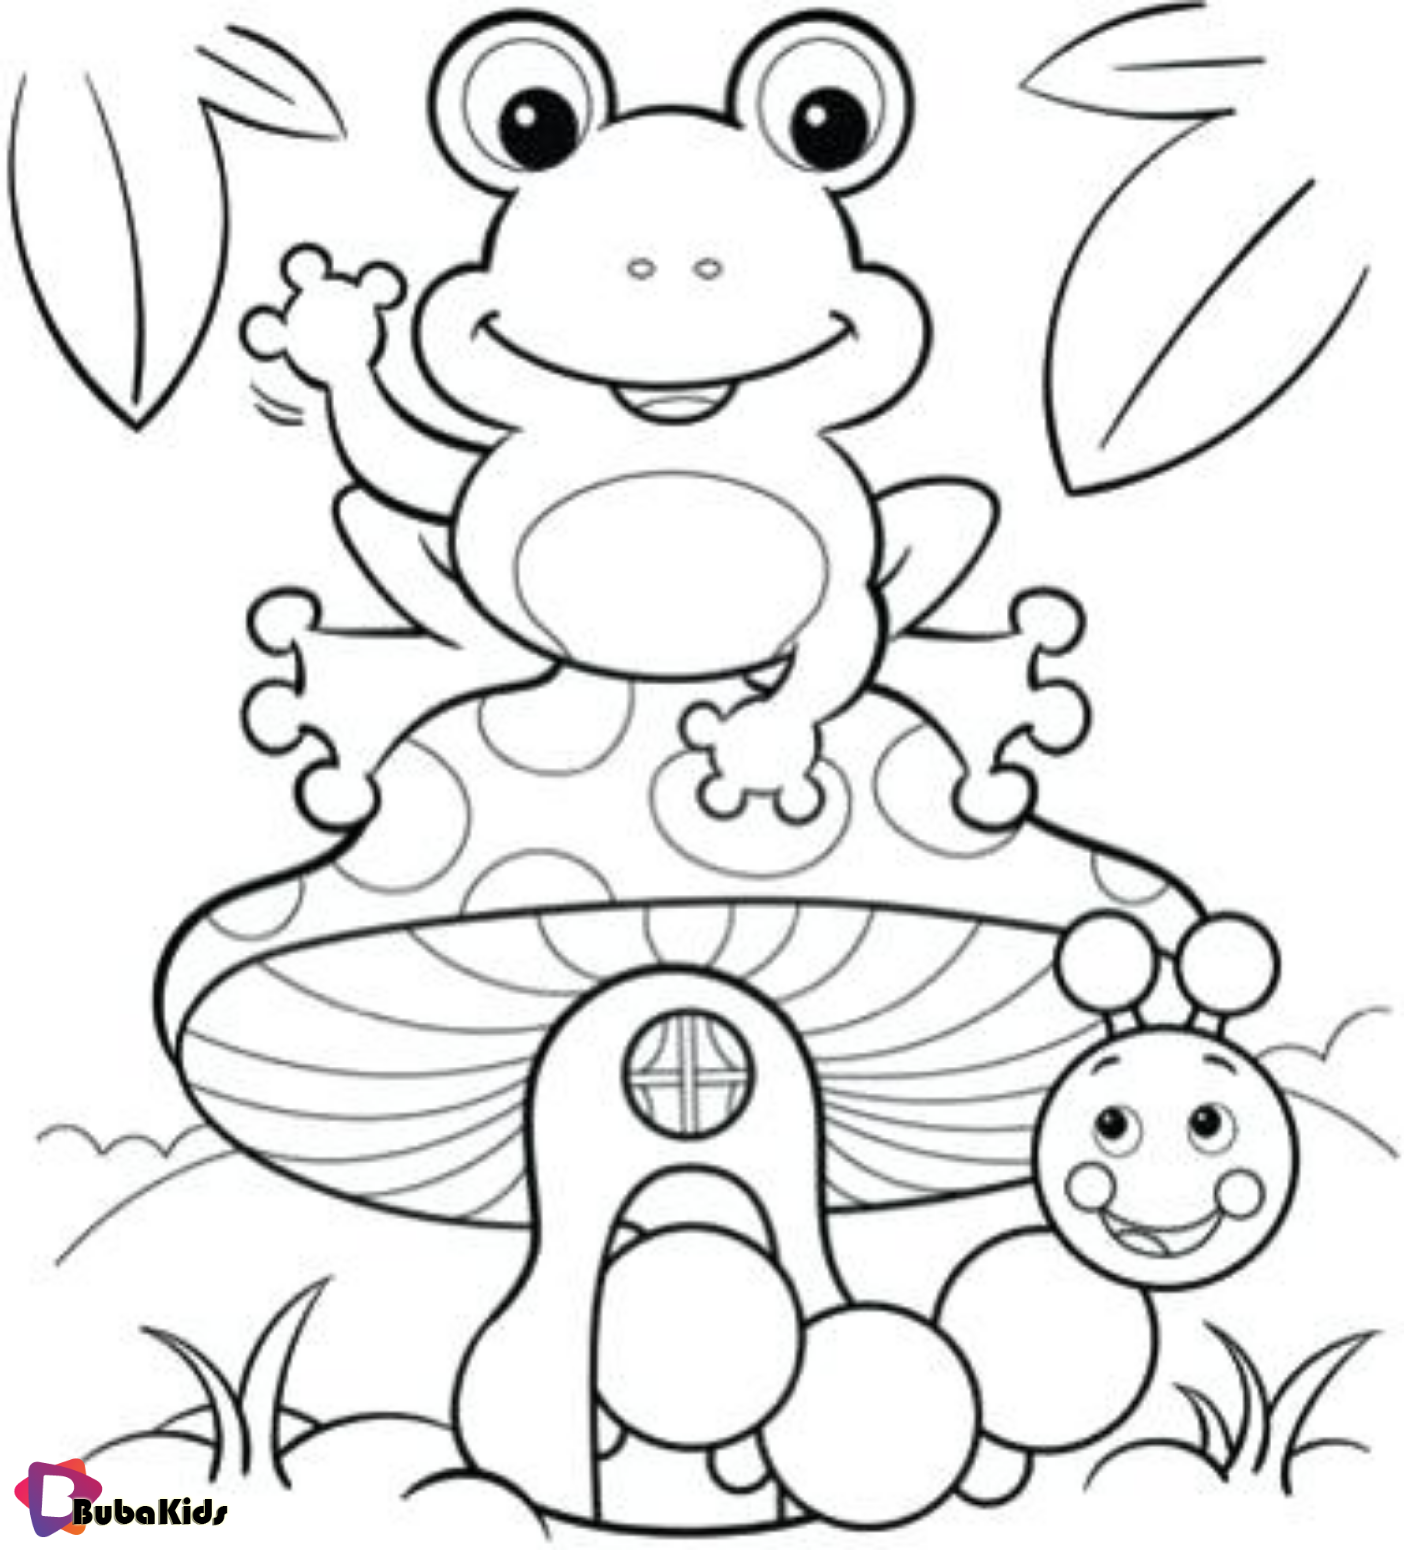 Free Printable Frog Coloring Pages Frog, toad #Frog, #Toad ...